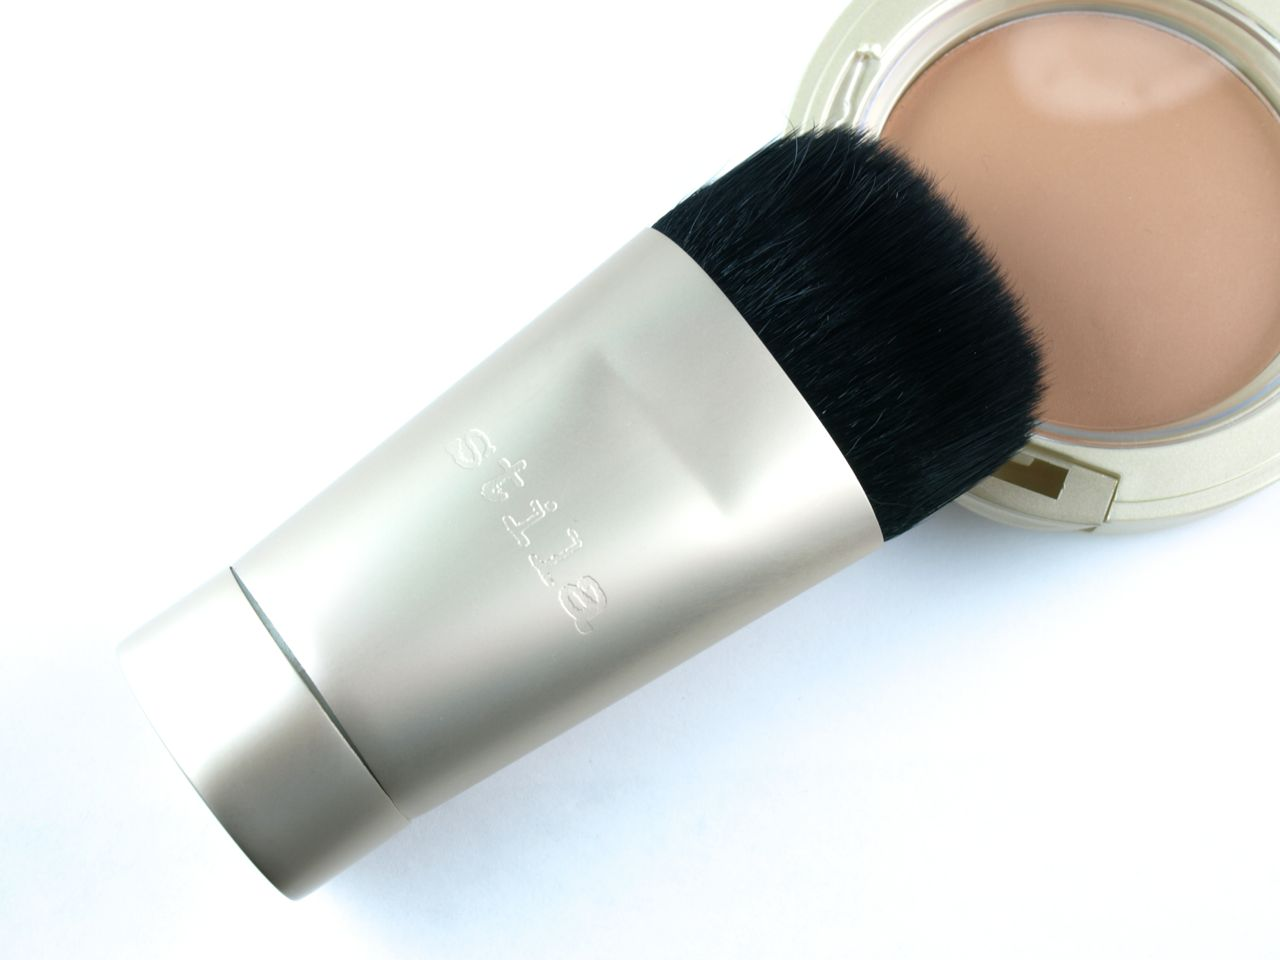 Stila Perfectly Poreless Putty Perfector & Wonder Brush: Review and Swatches